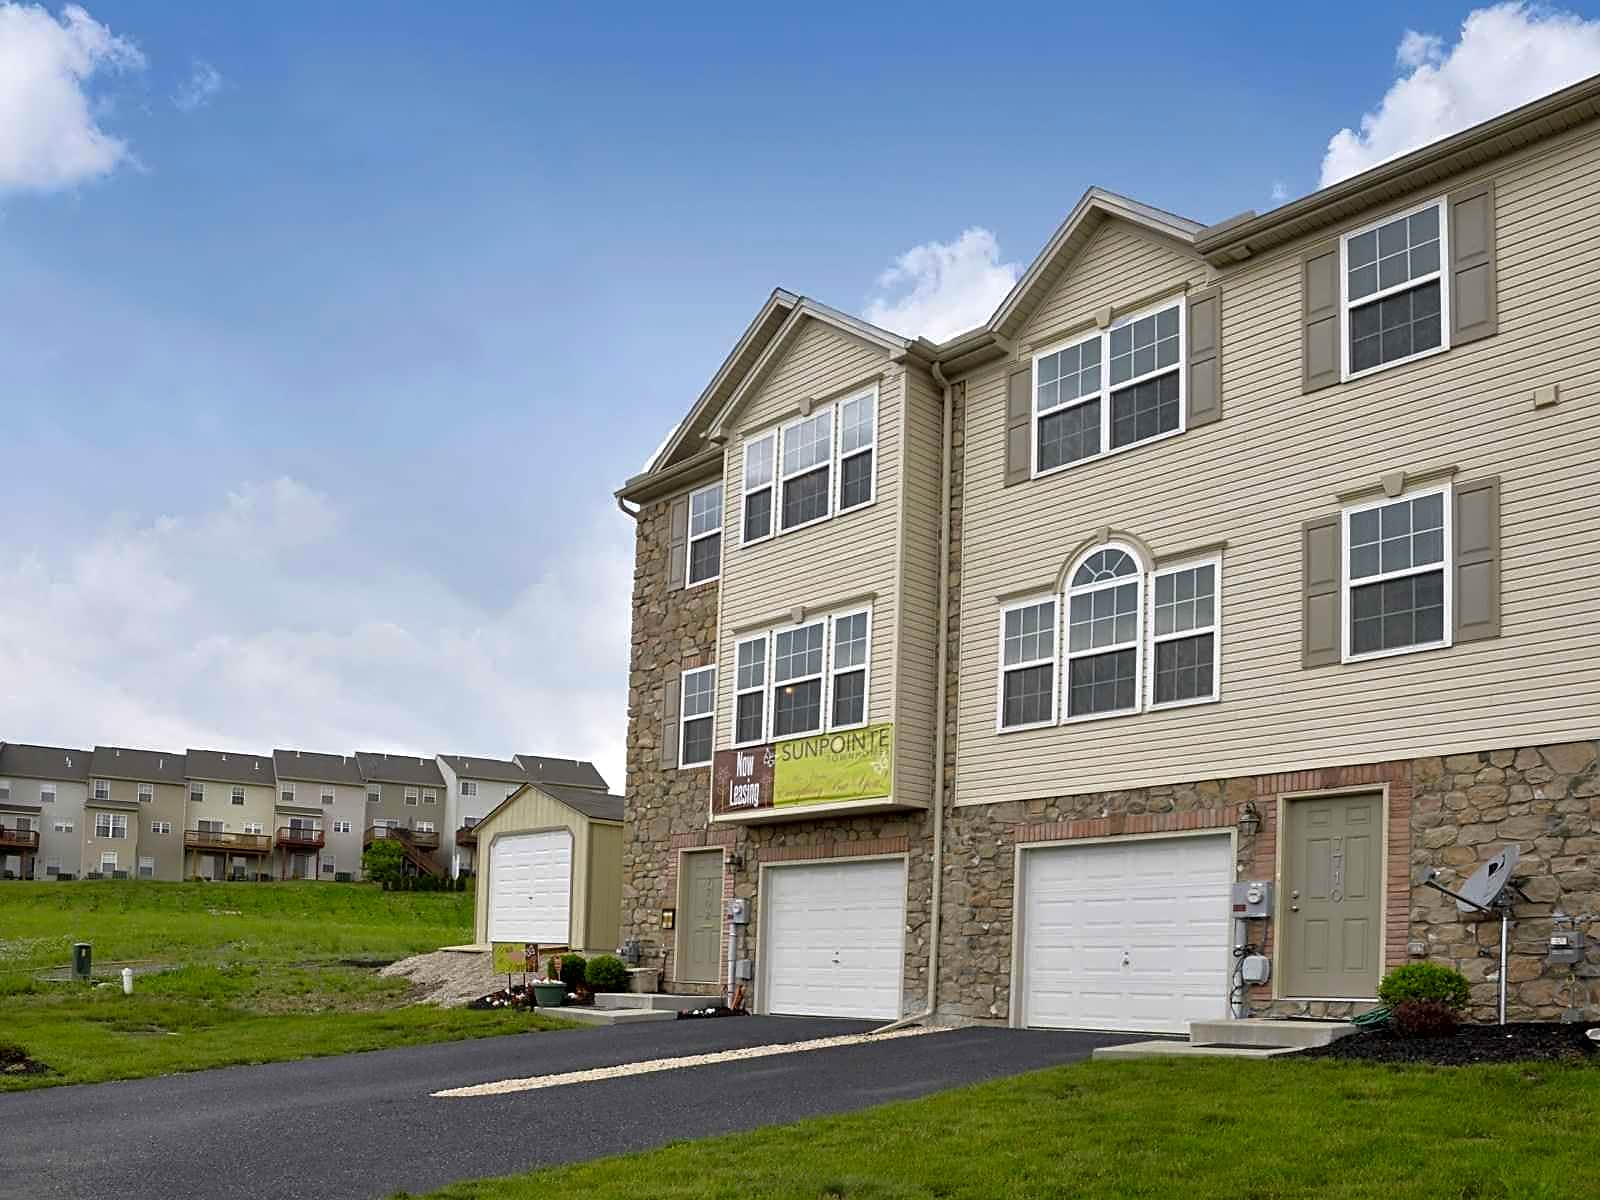 Sunpointe Townhomes